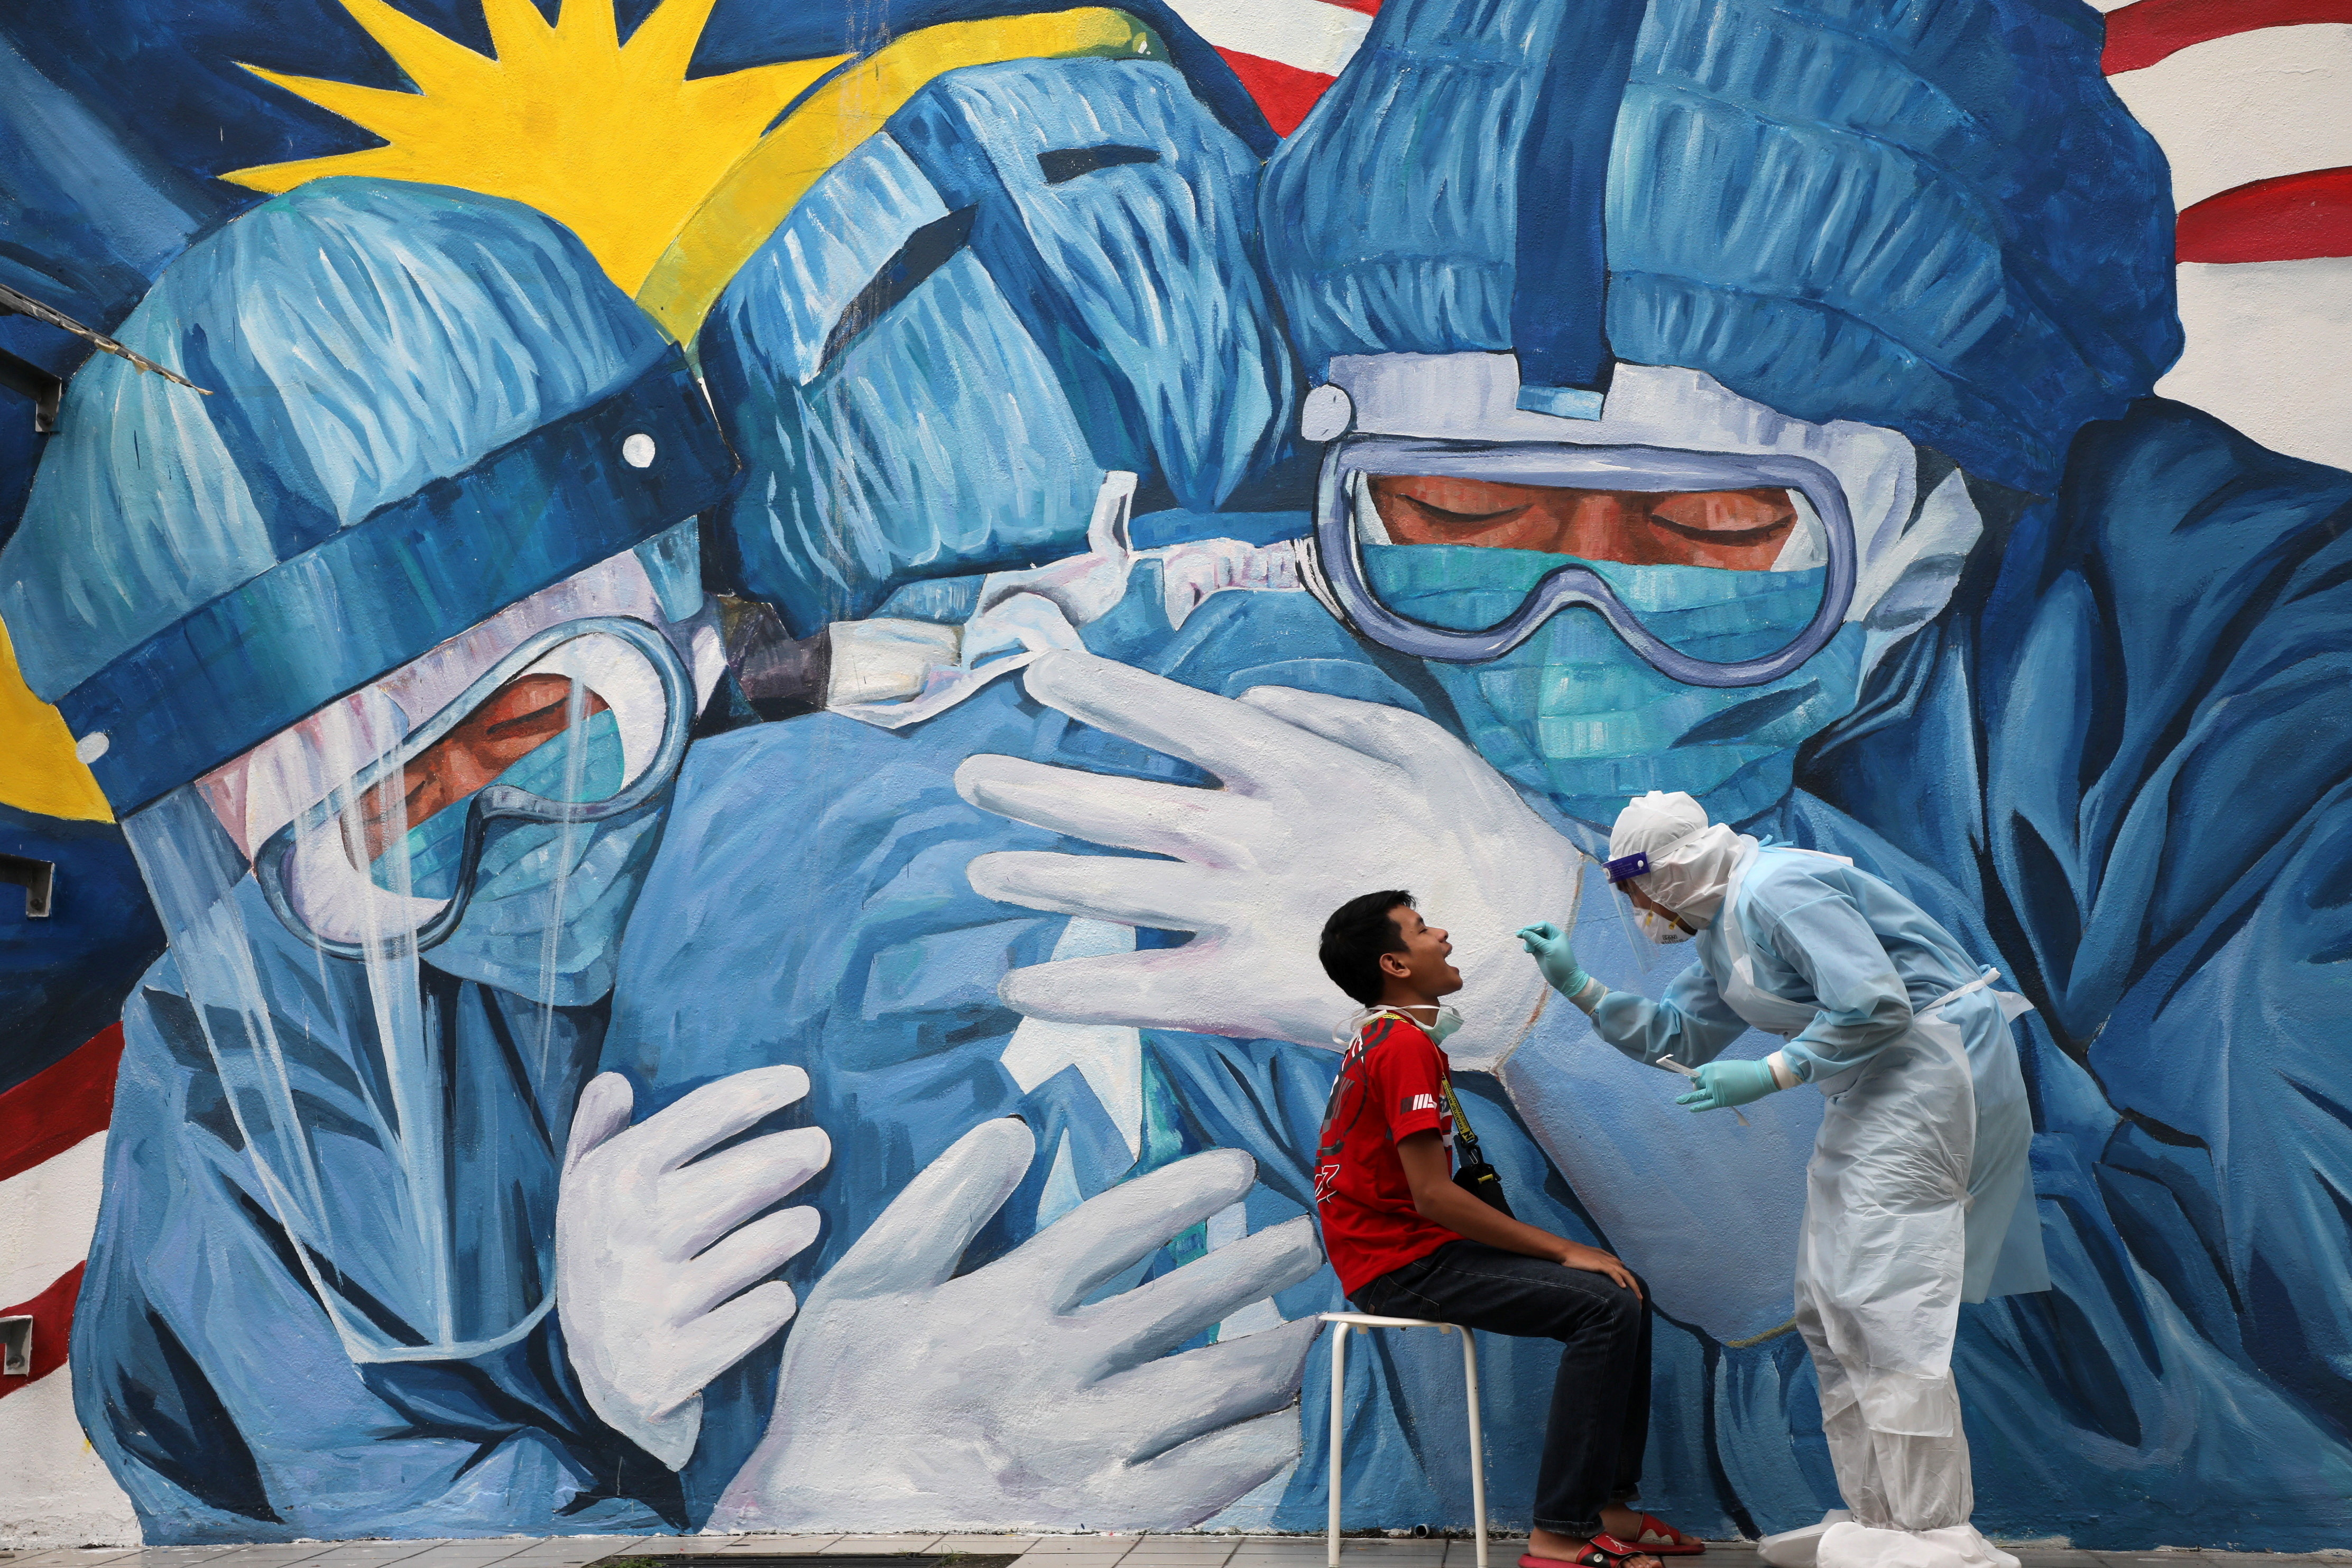 A doctor collects a swab sample from a man to be tested for the coronavirus disease against a mural depicting solidarity among healthcare workers.